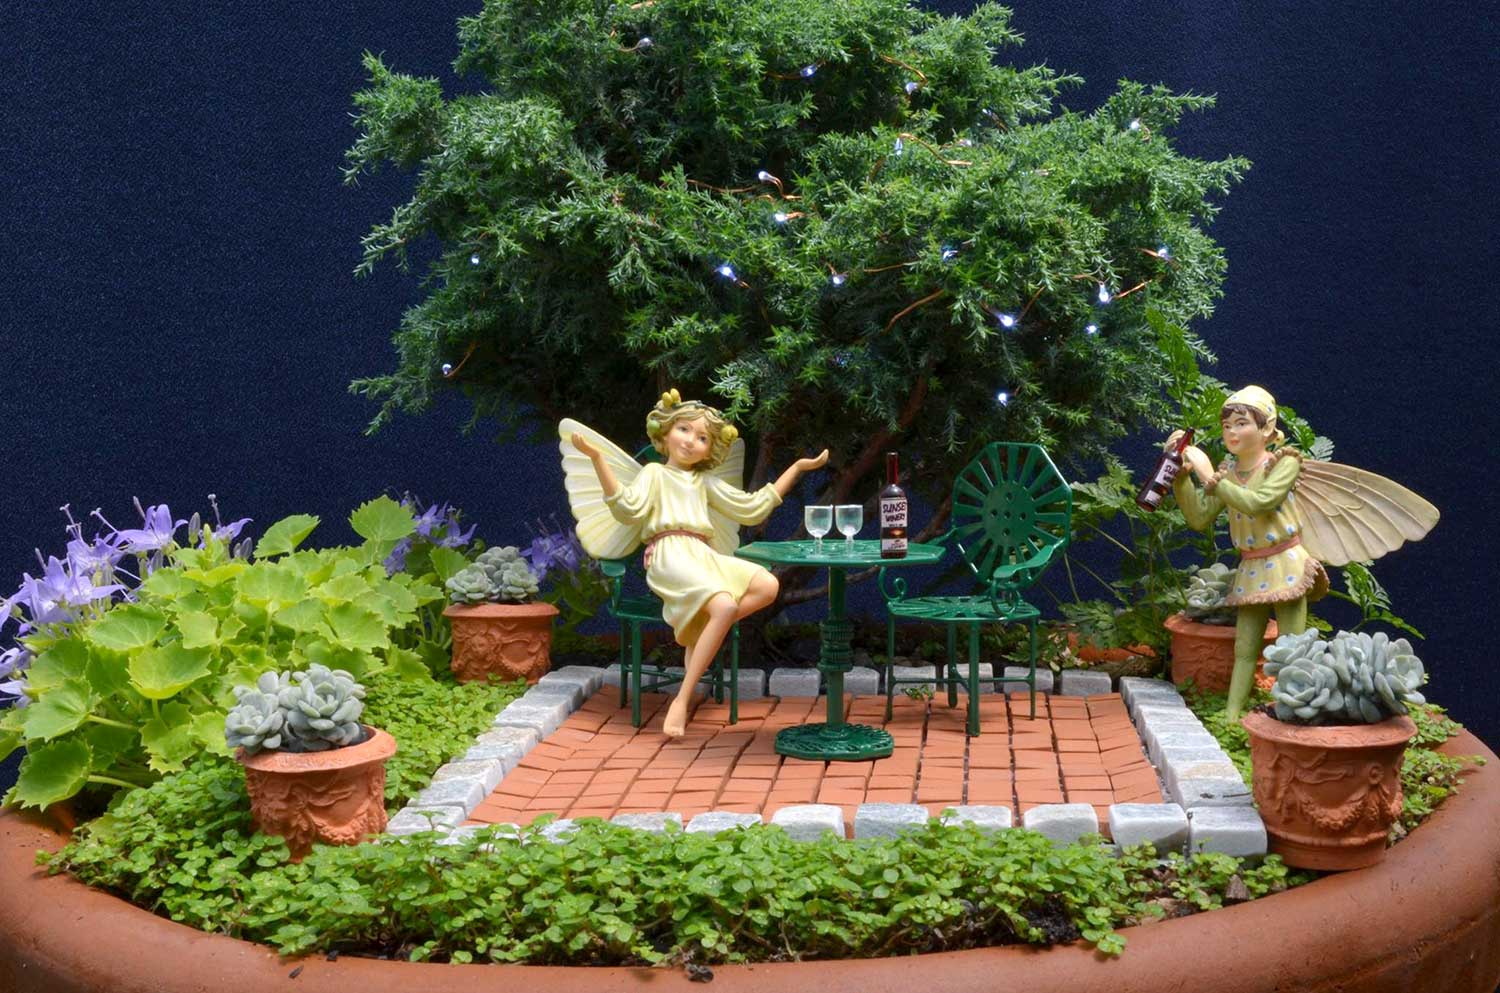 Fairy Gardens Ideas best 25 miniature fairy gardens ideas on pinterest Fairygardenatnight